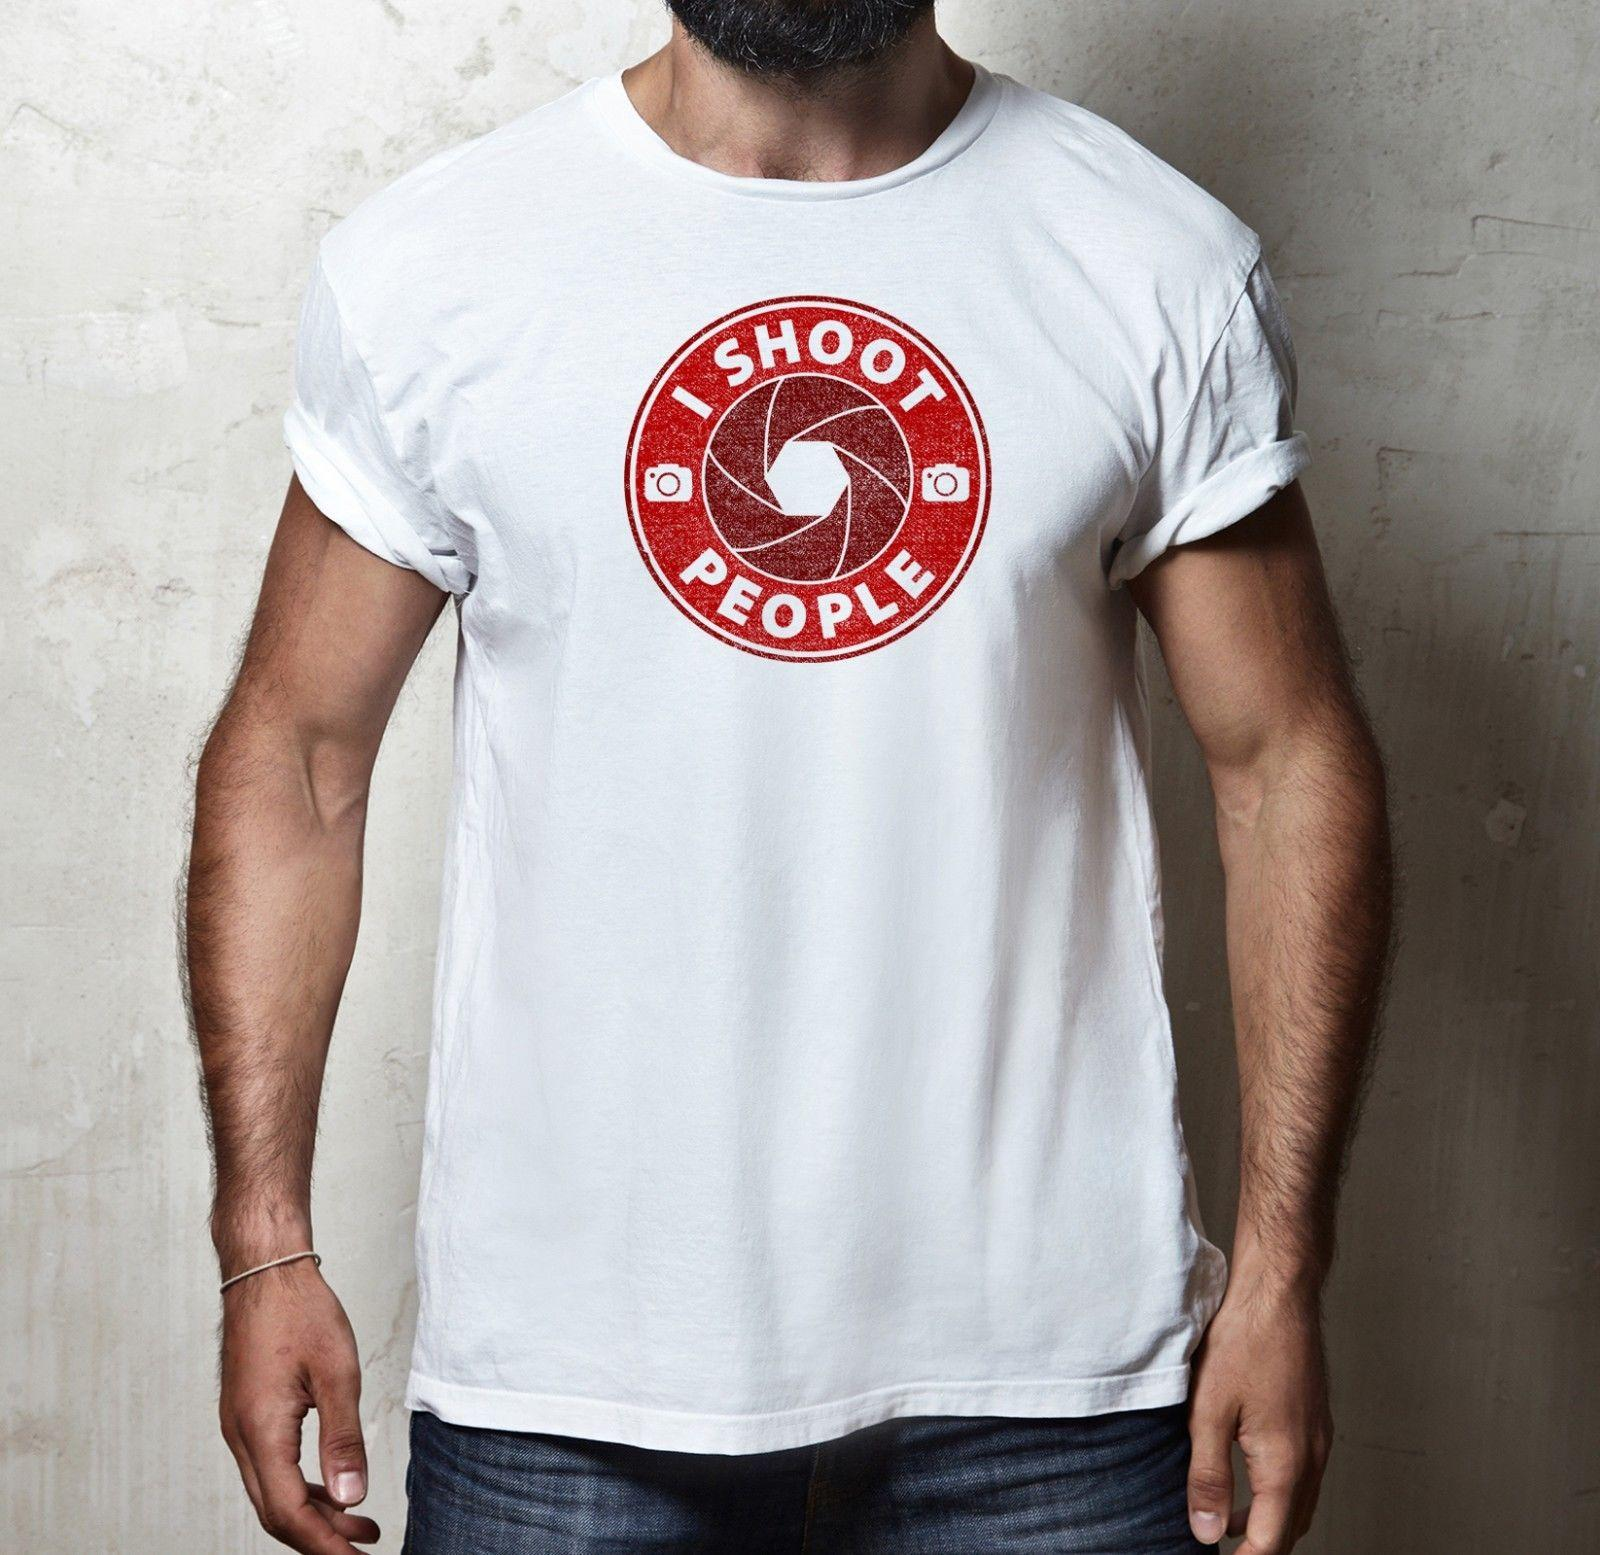 288a0dee9 I SHOOT PEOPLE LOGO T SHIRT 100%COTTON PHOTOGRAPHY PHOTOGRAPHER NIKON CANON  TEE Funny Unisex Casual Tshirt Top Make Your Own T Shirts T Shirt Printers  From ...